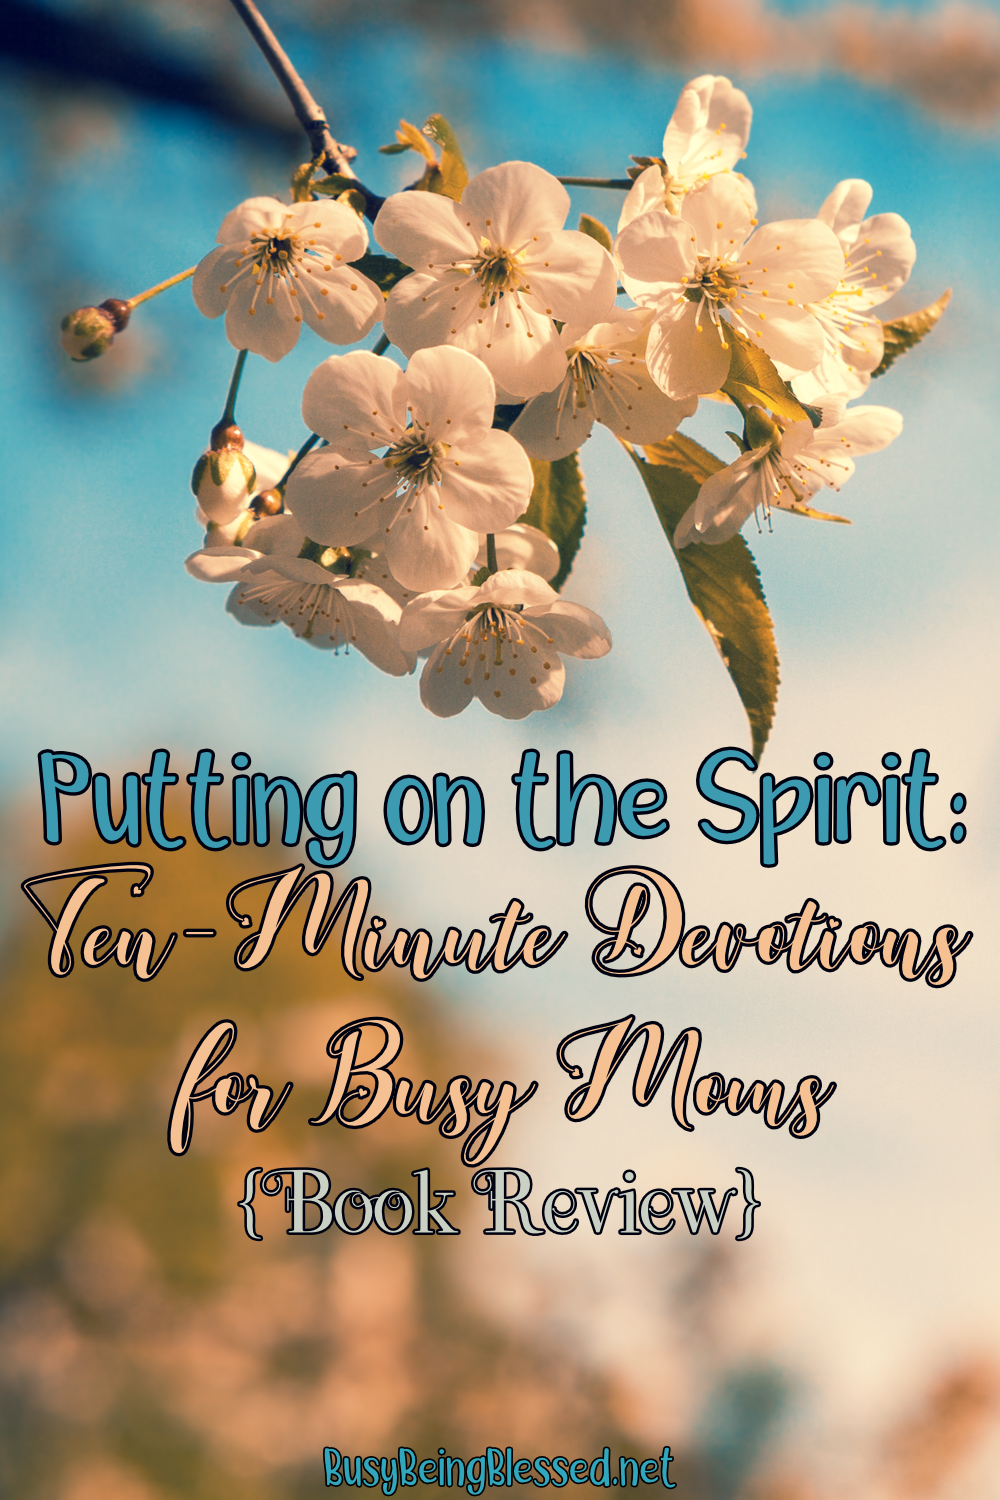 I was thrilled to be able to read and review my friend Katie's compact little devotional Putting on the Spirit: 10 Minute Devotions for Busy Moms. It sounded right up my alley! 10 minutes is just the right amount of time for me, usually!